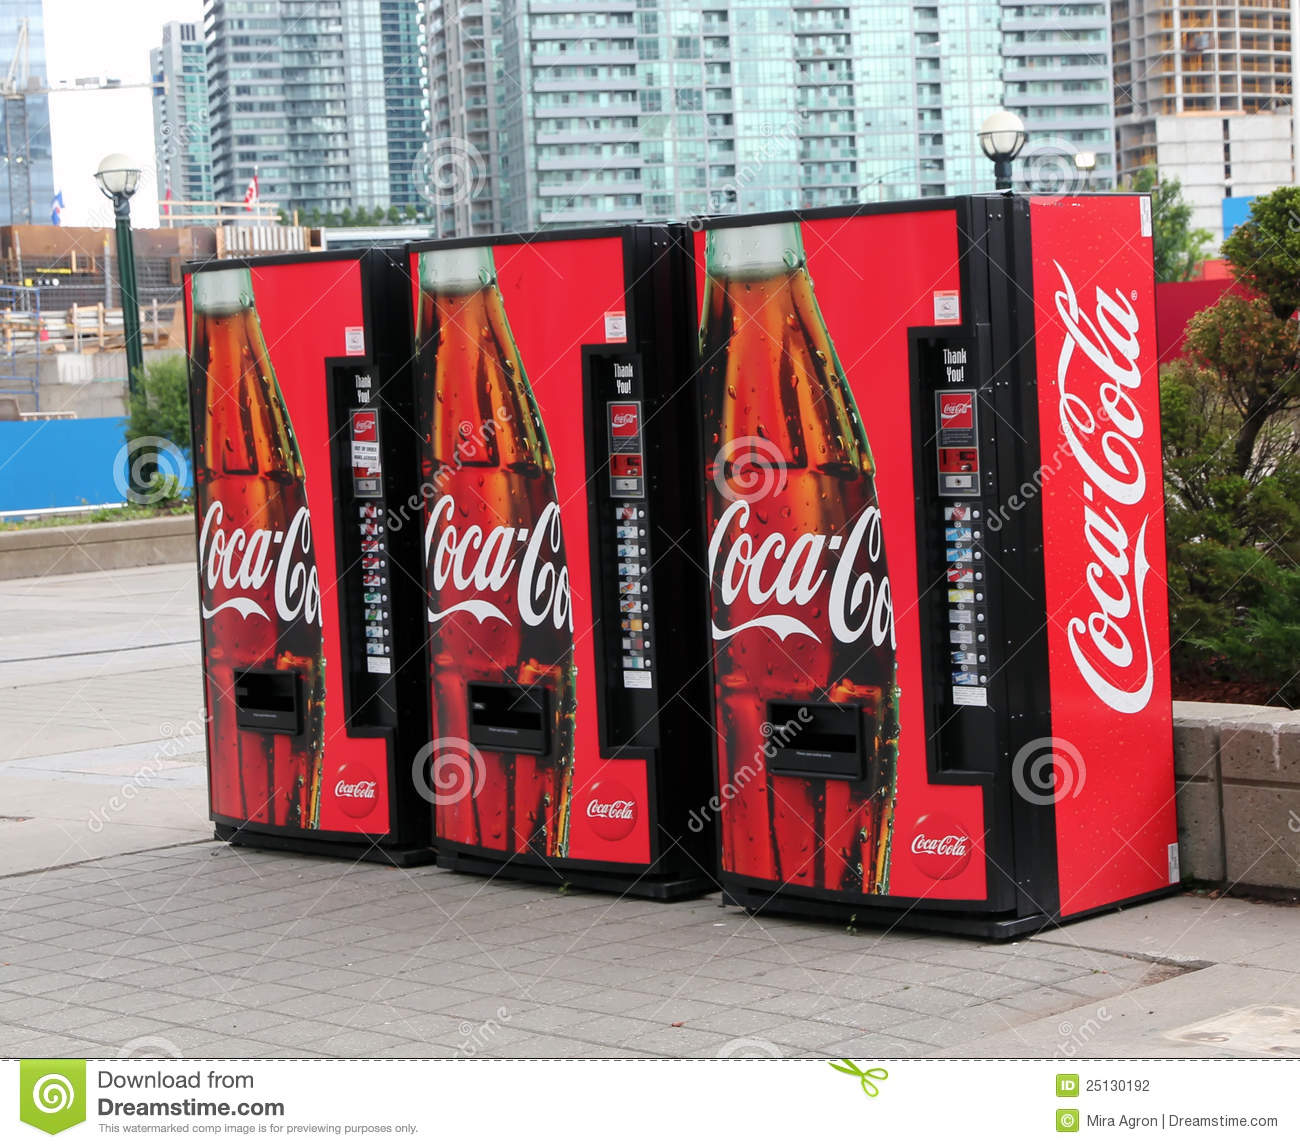 coca cola s new vending machine pricing to capture value or not Need help with your coca-cola vending machine or coca of your interest in serving coca-cola products a new business request find your local contact.